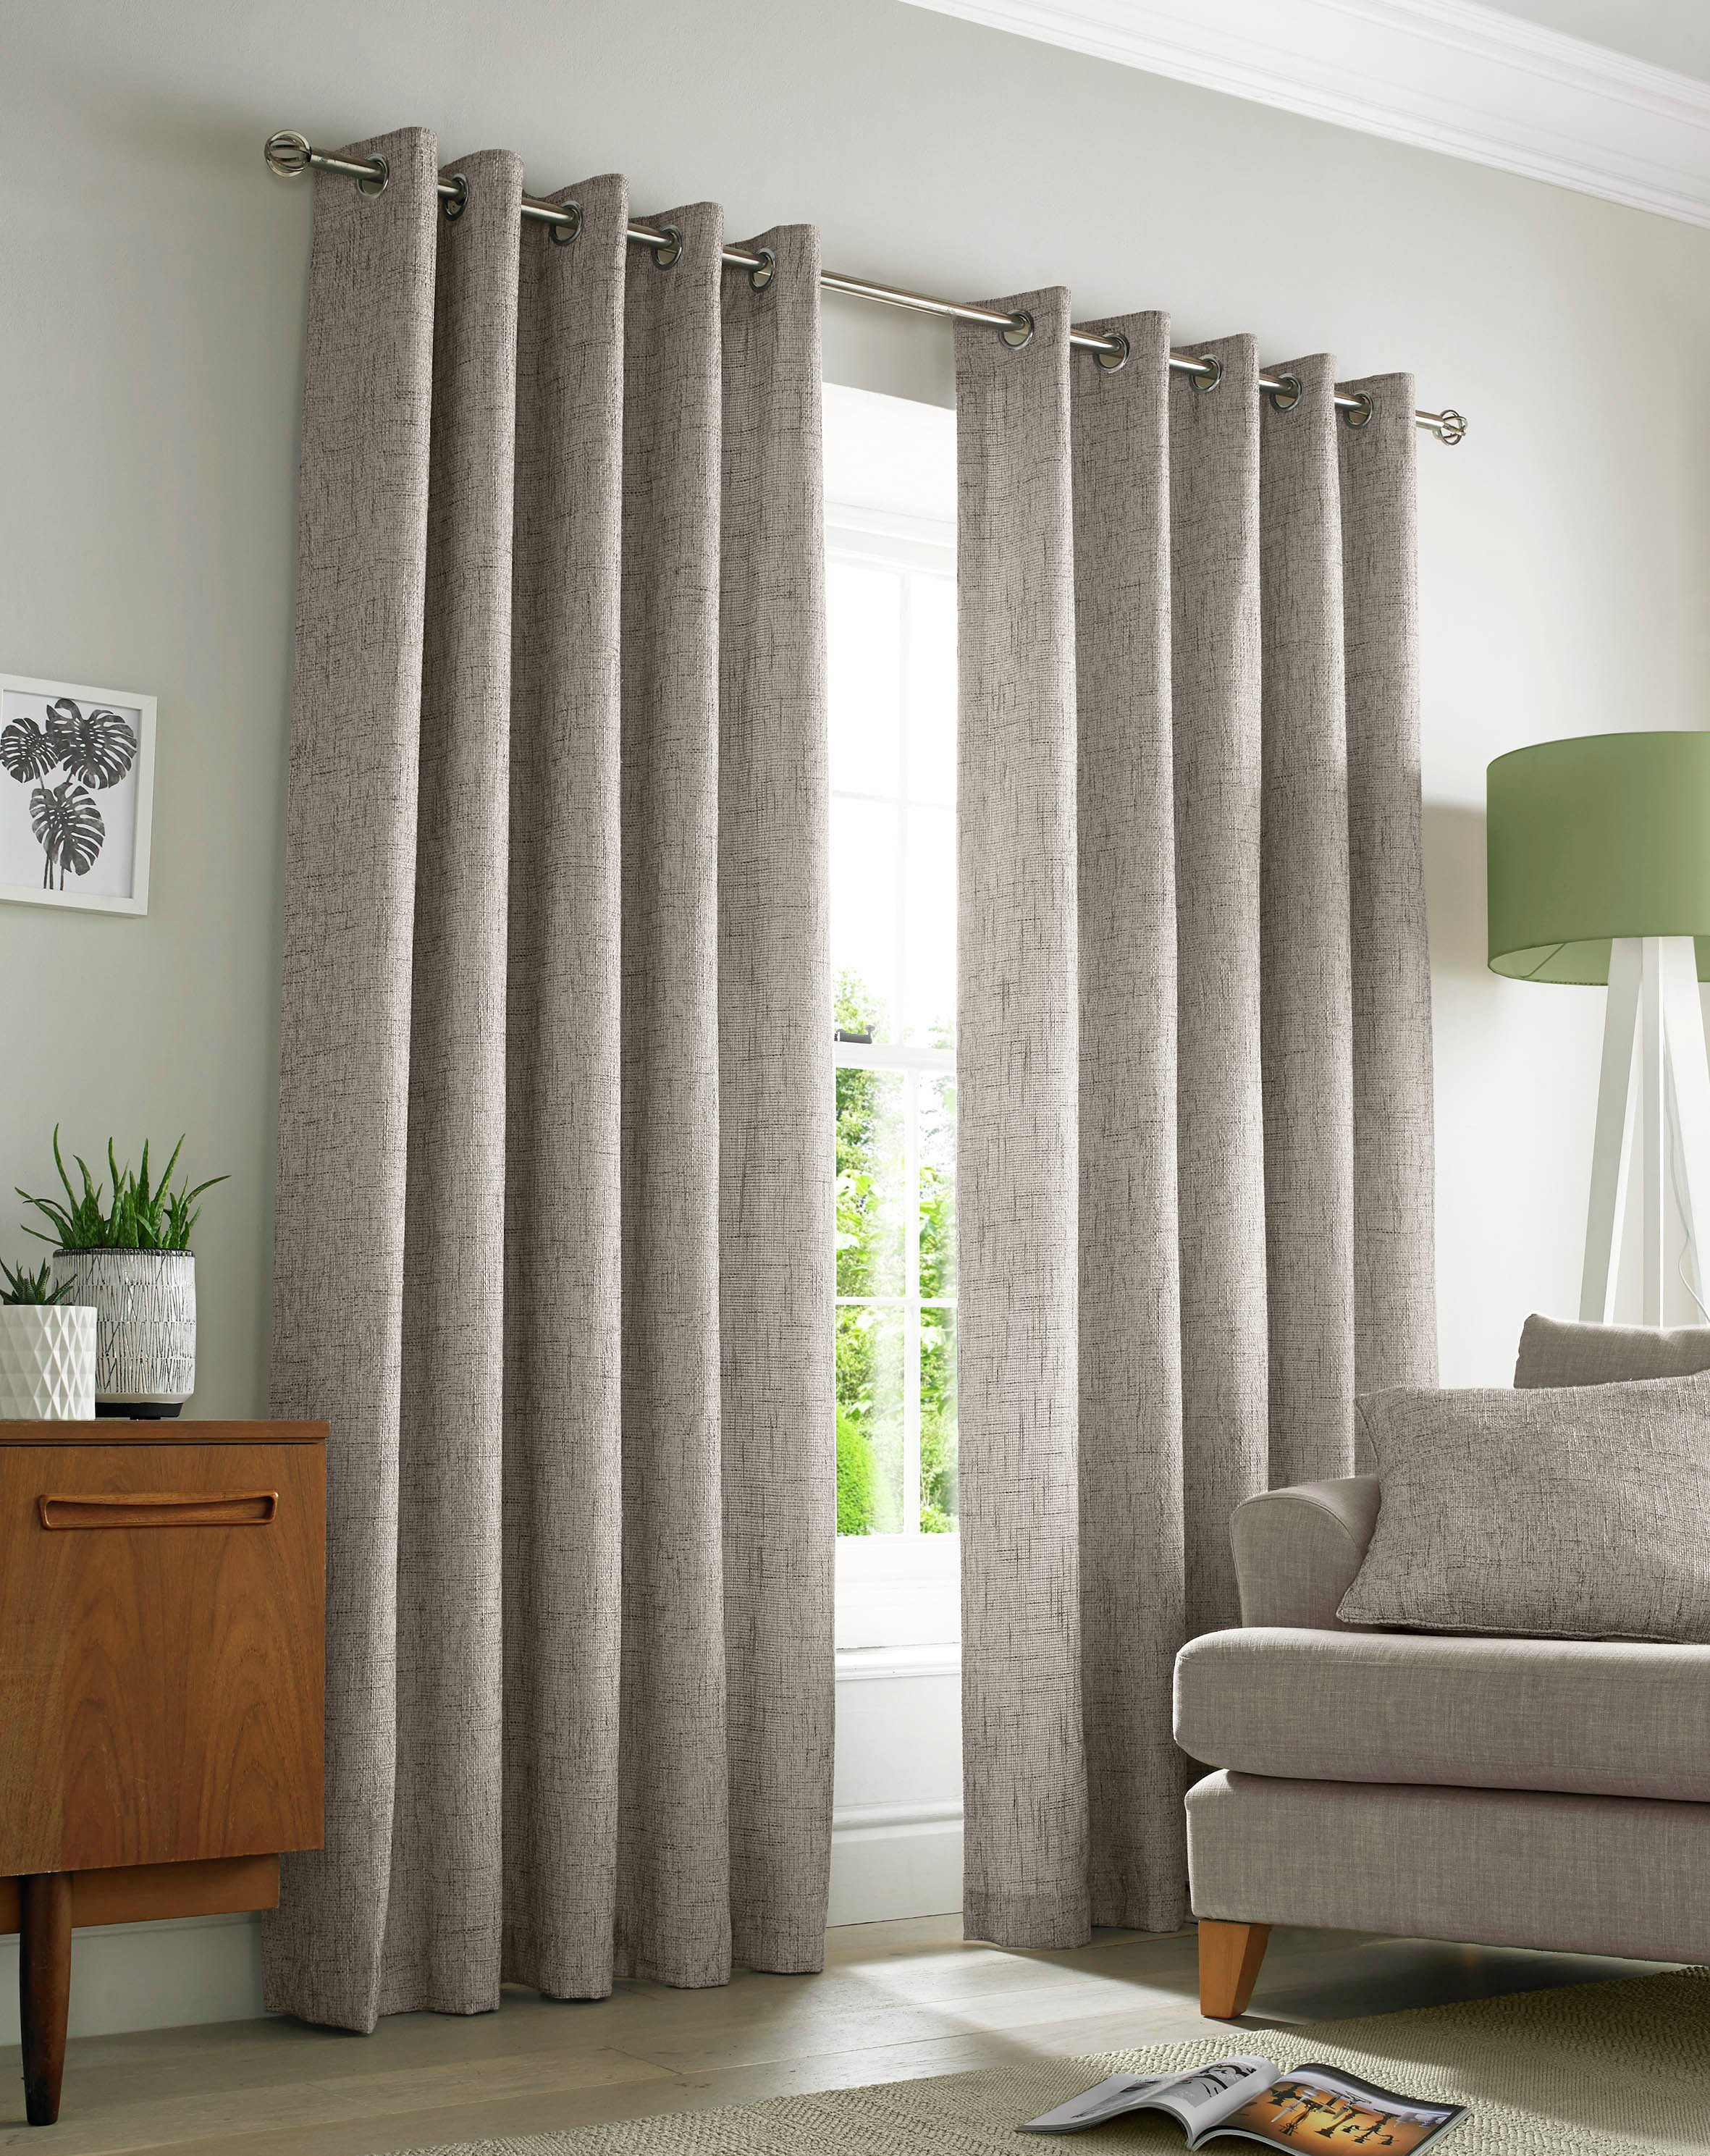 Academy Eyelet Curtains - 229x229cm - Natural.